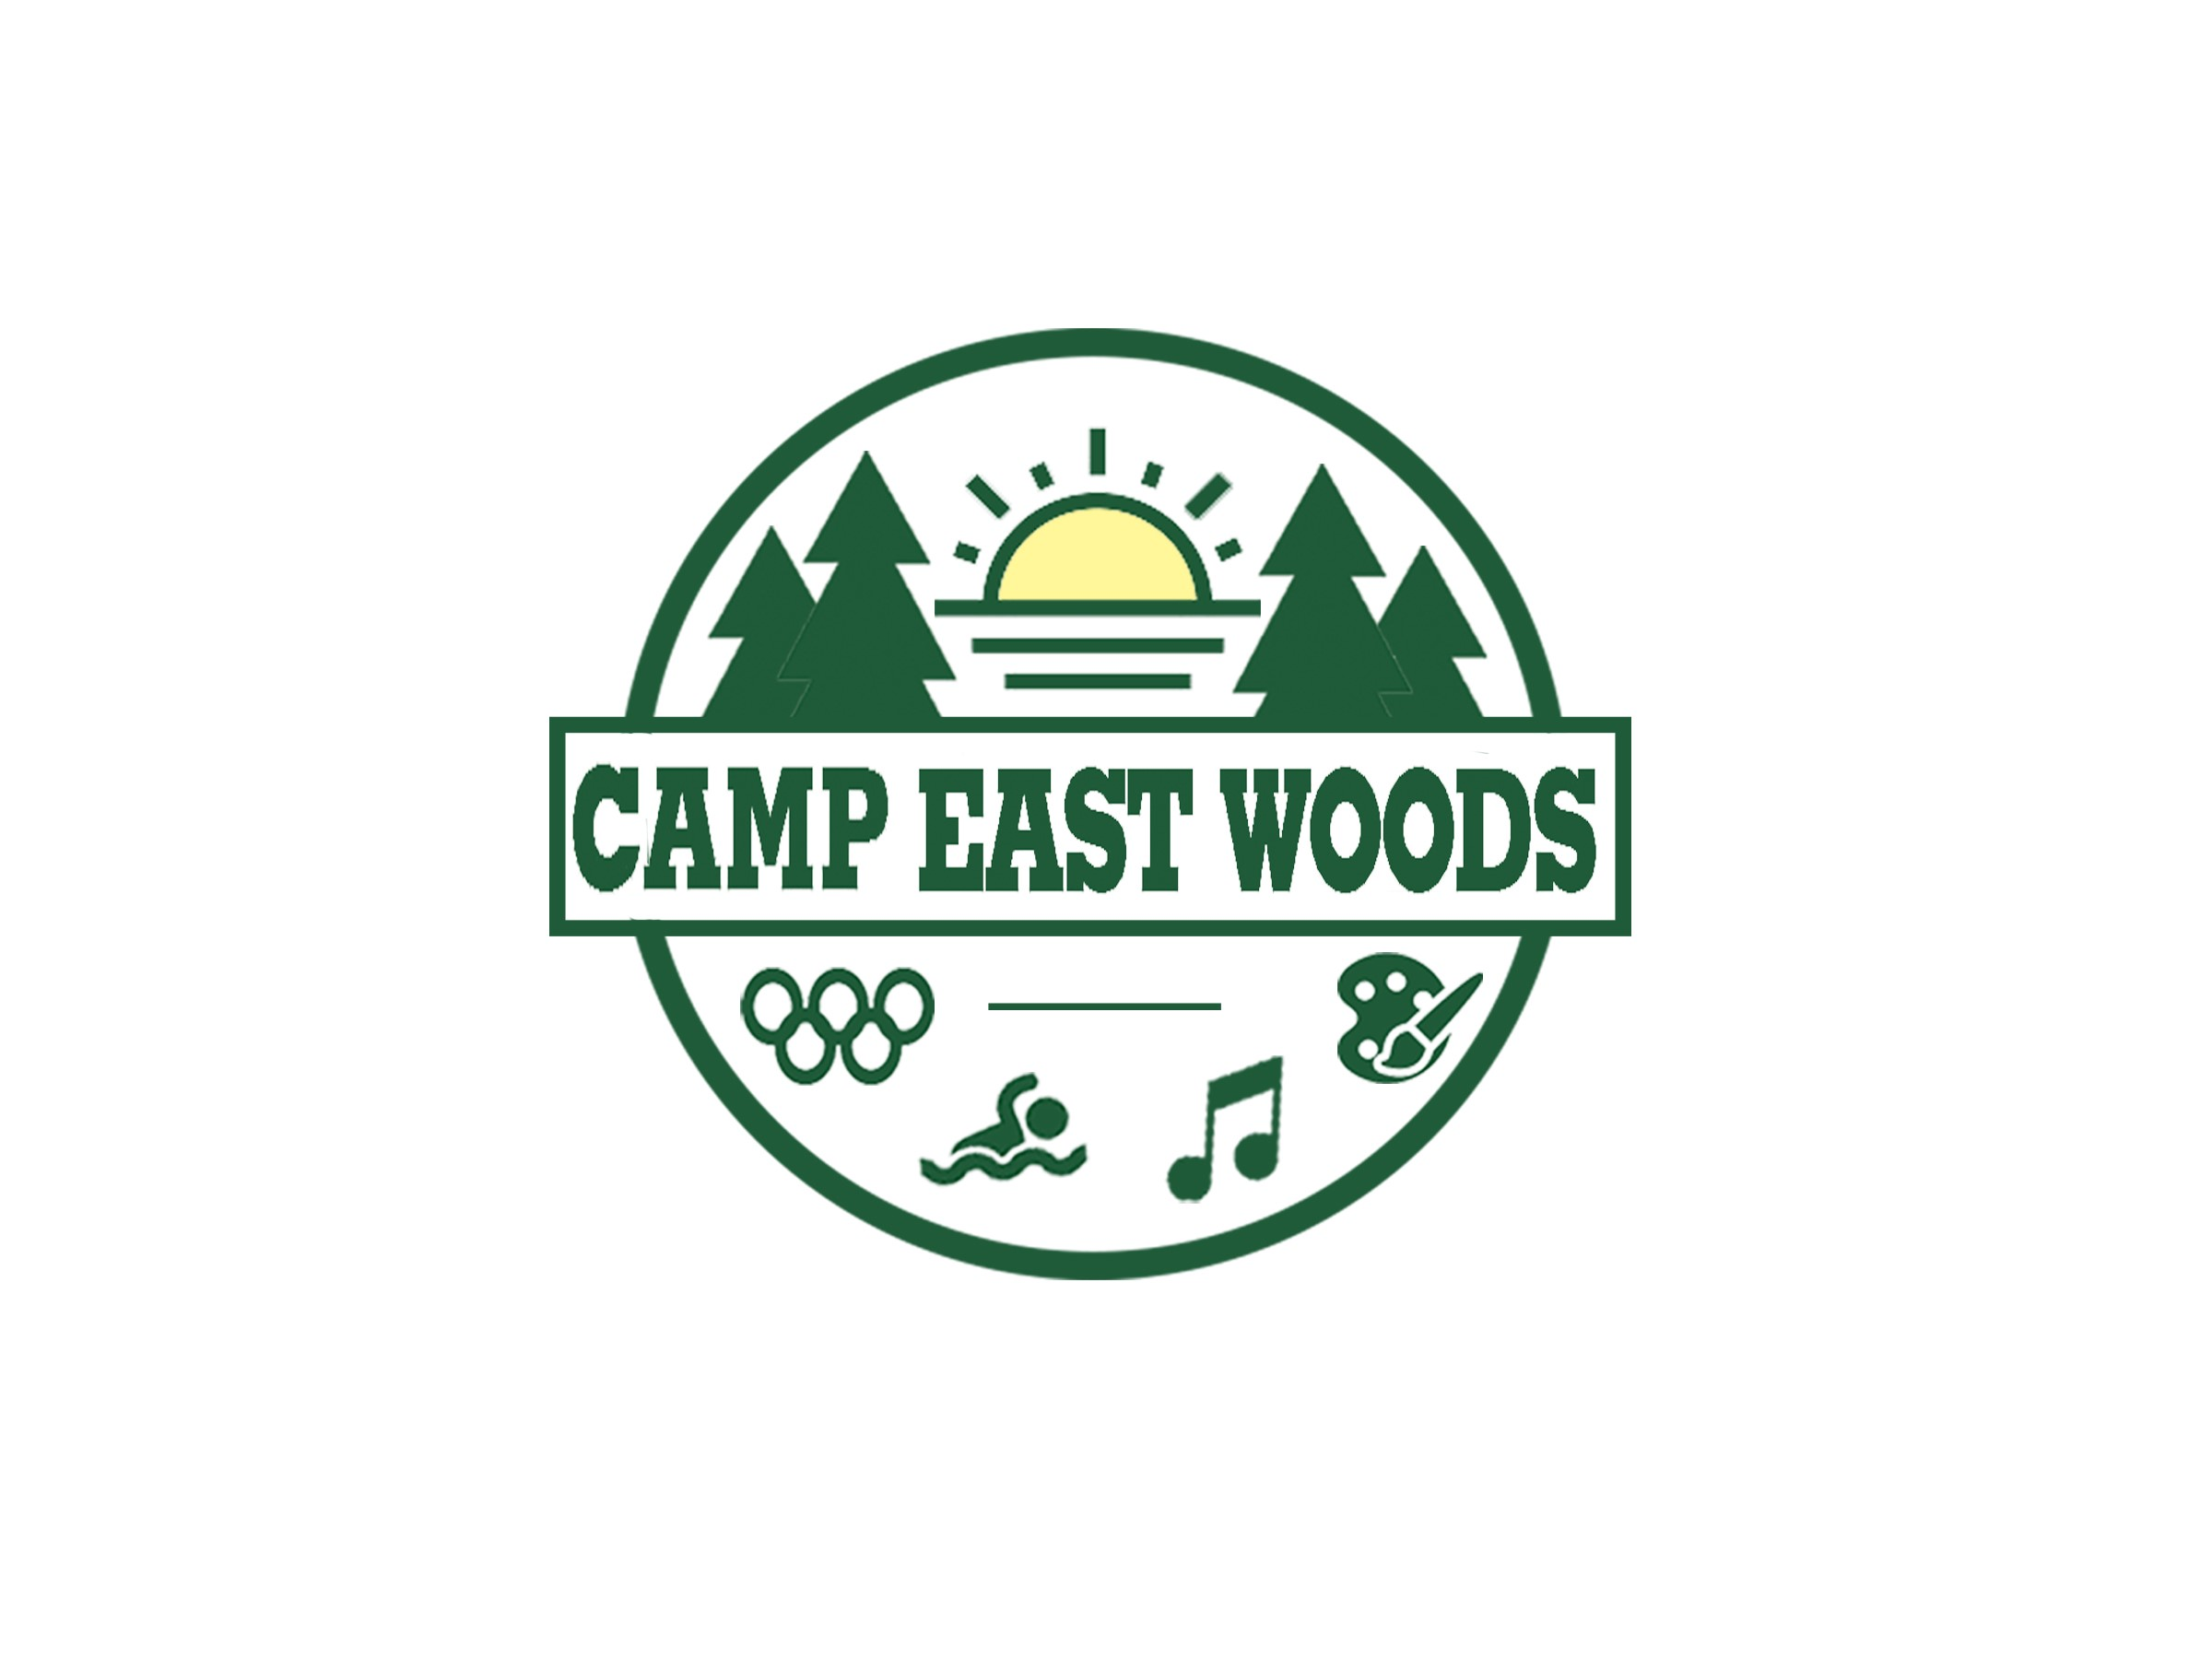 Camp East Woods